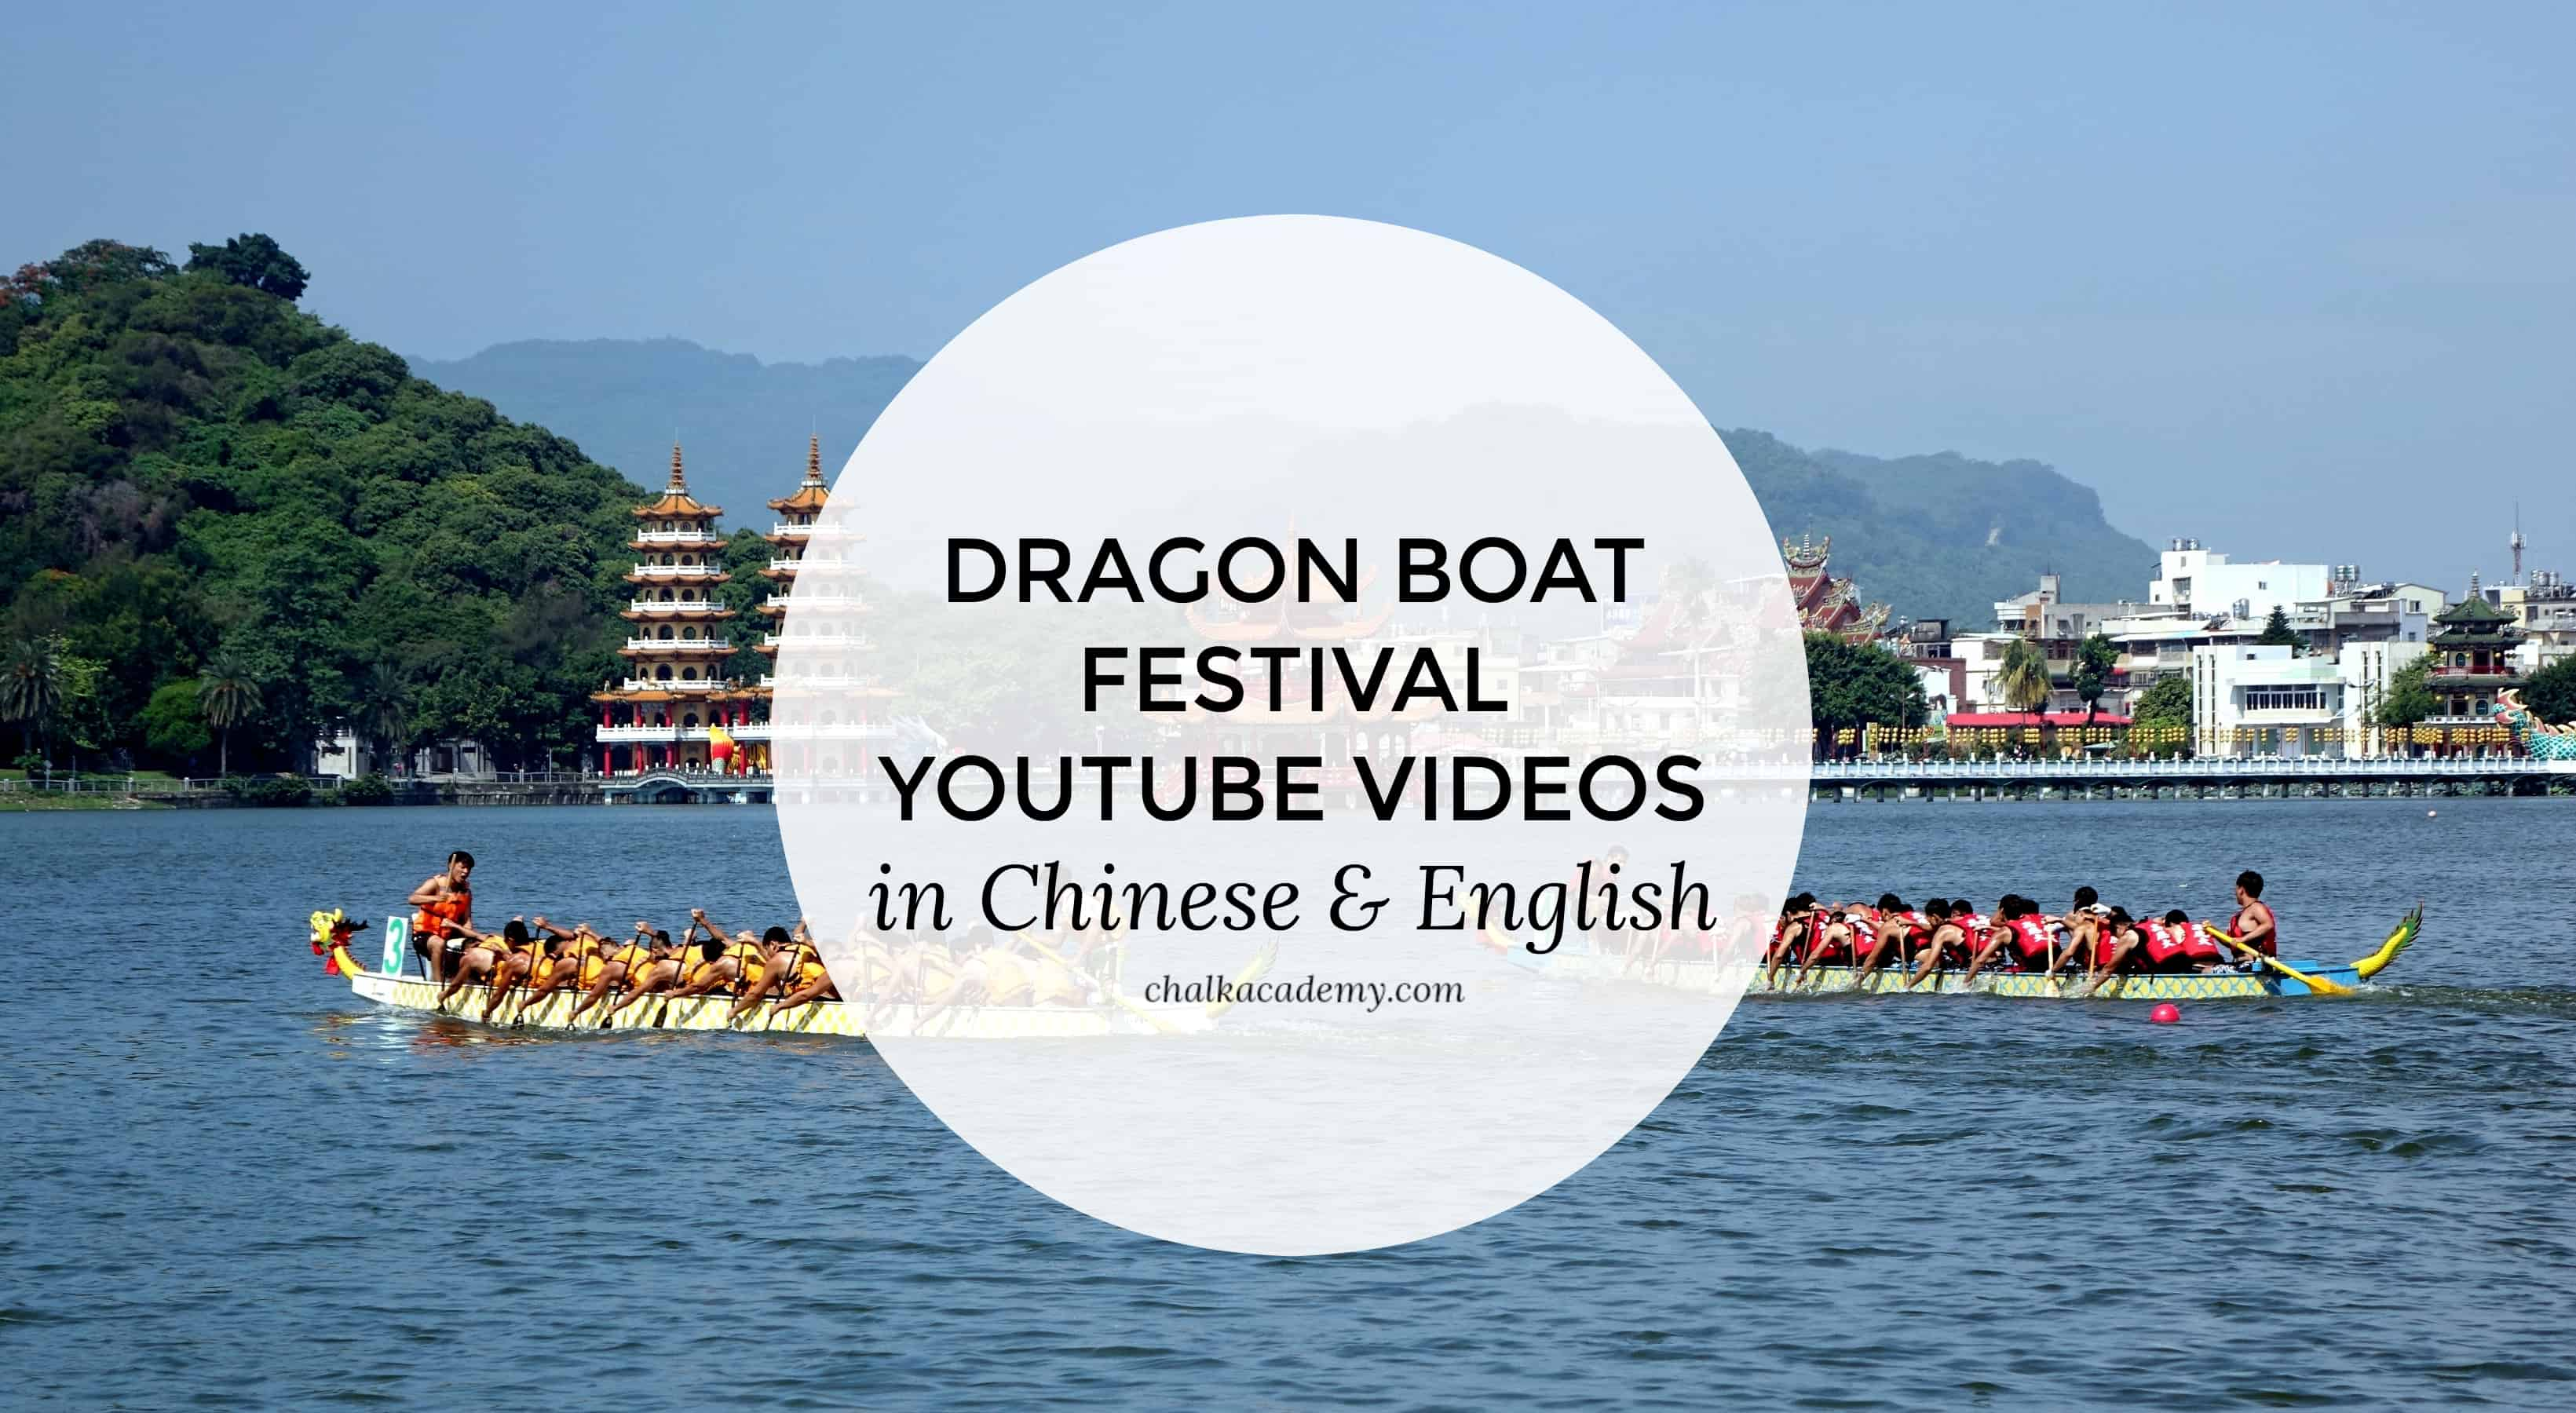 9 Dragon Boat Festival Youtube Videos In Chinese